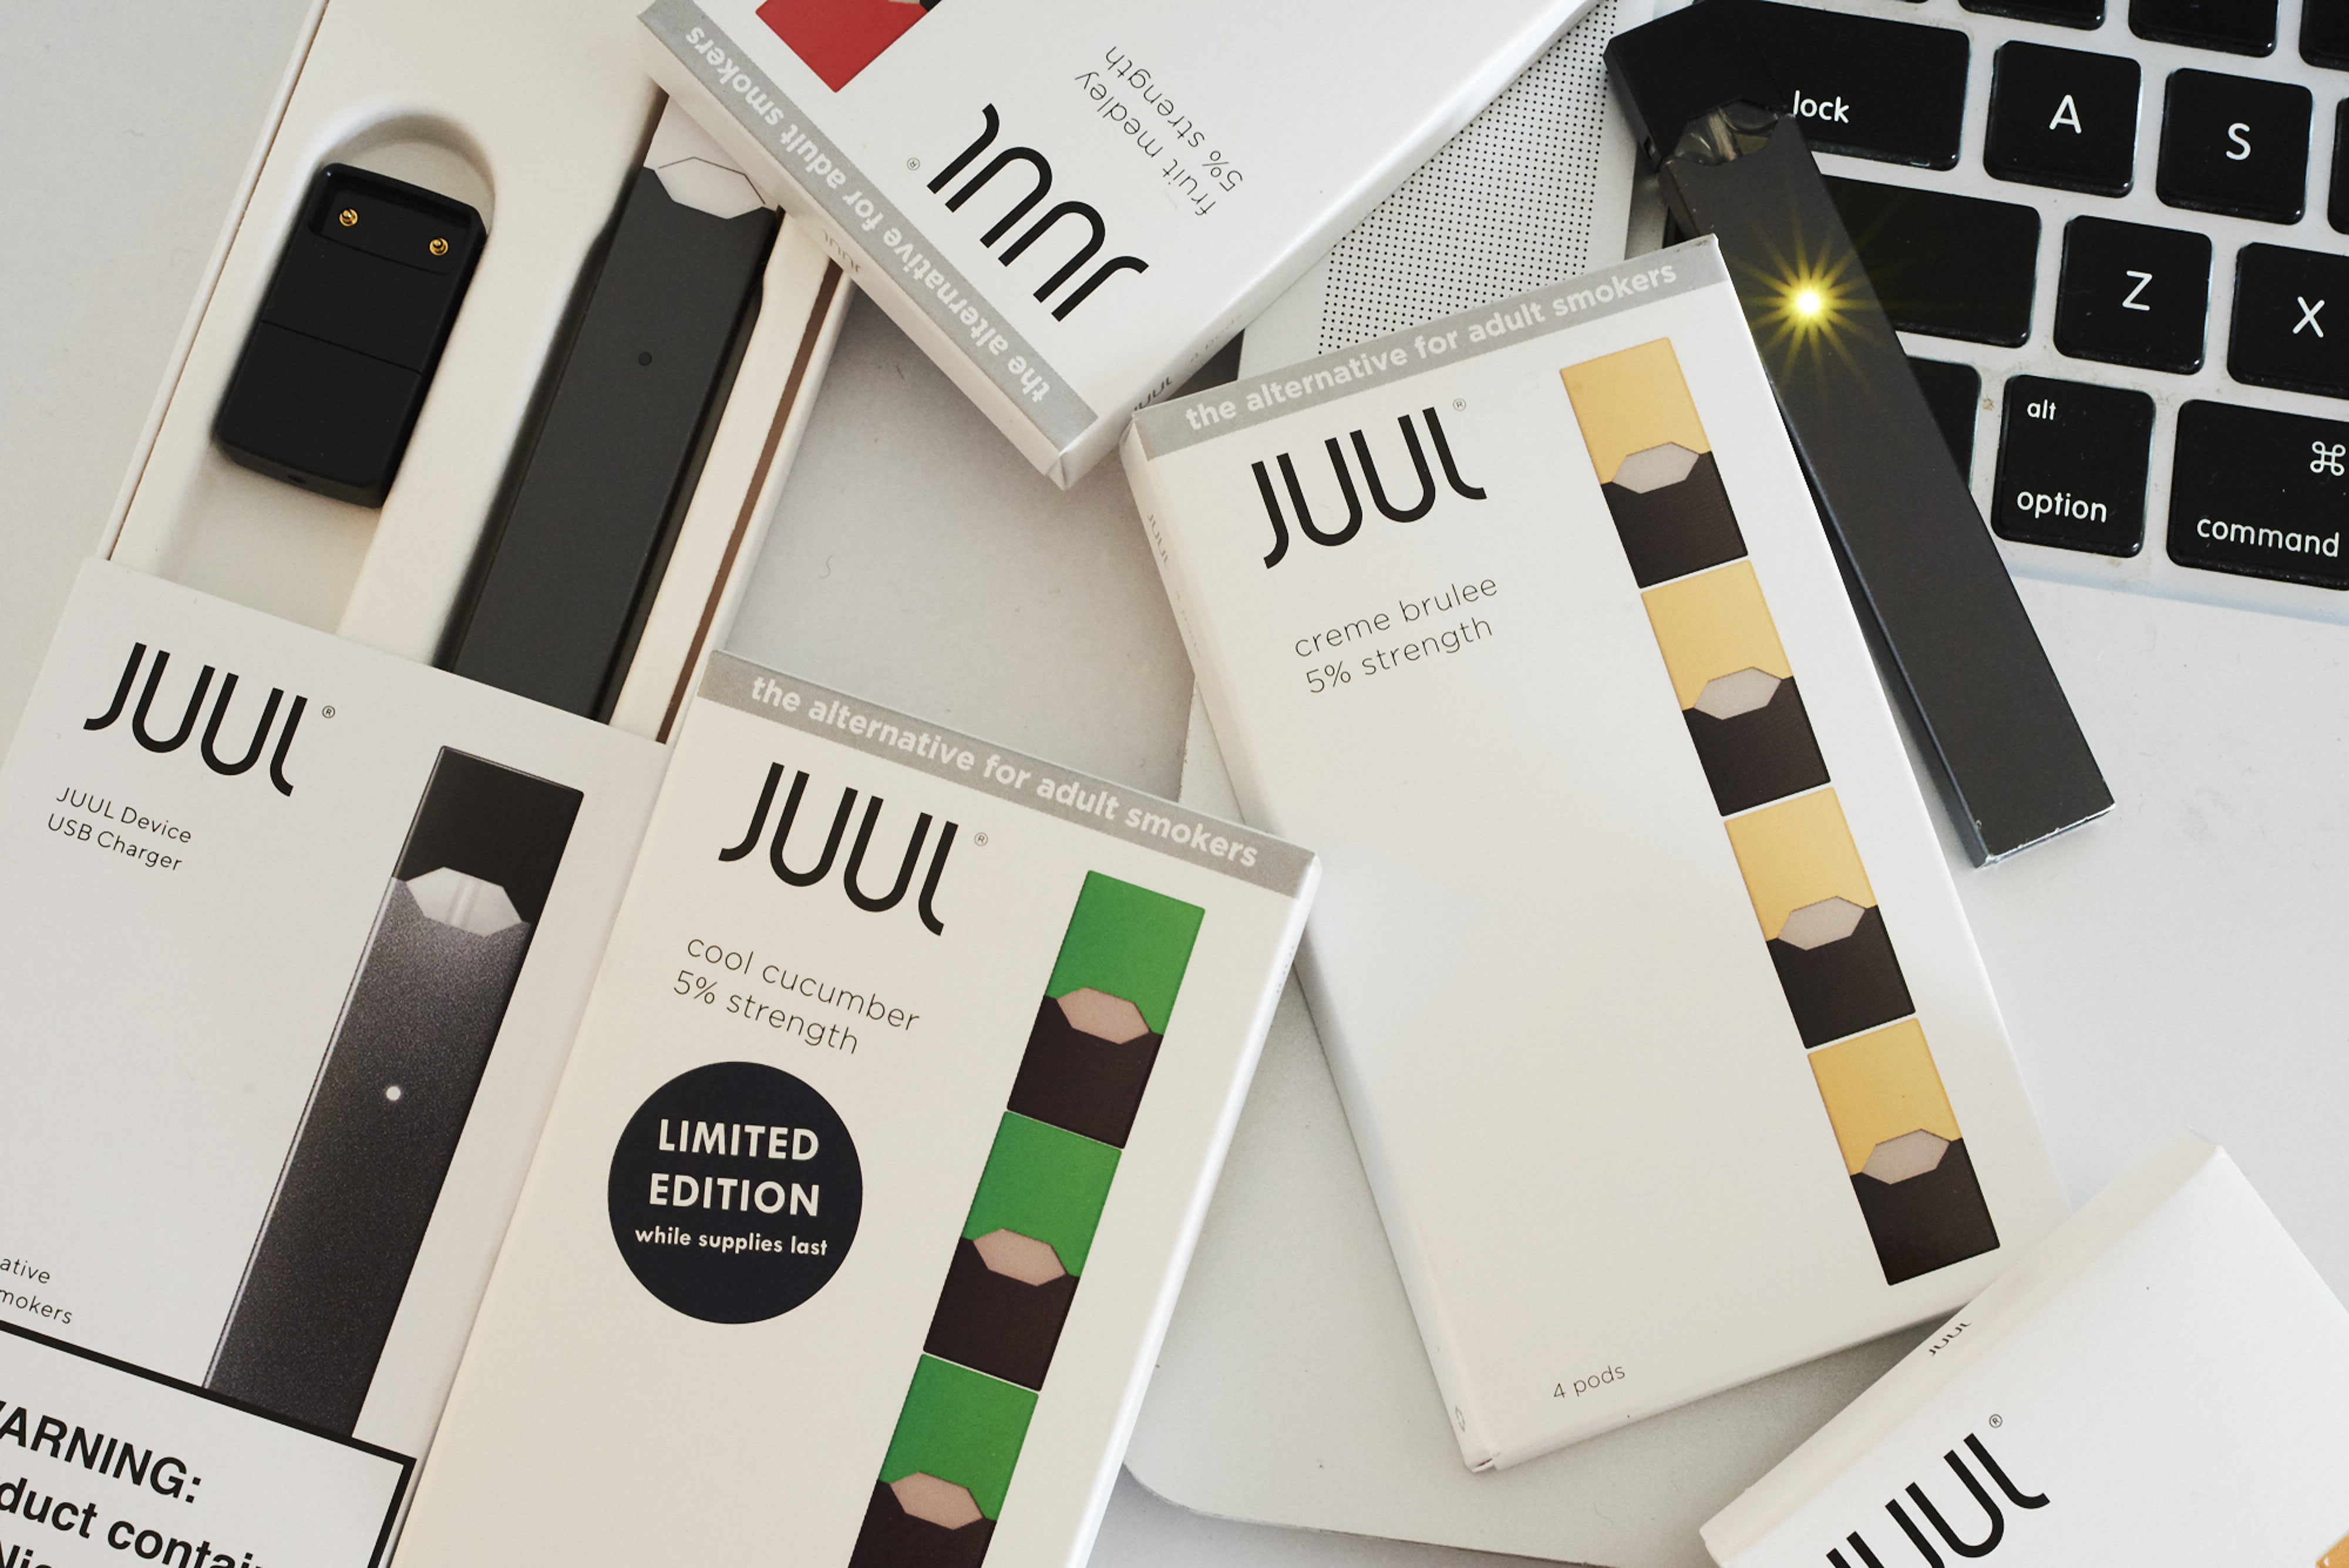 E-cigarette giant Juul suspends sales of all fruity flavors ahead of looming US ban